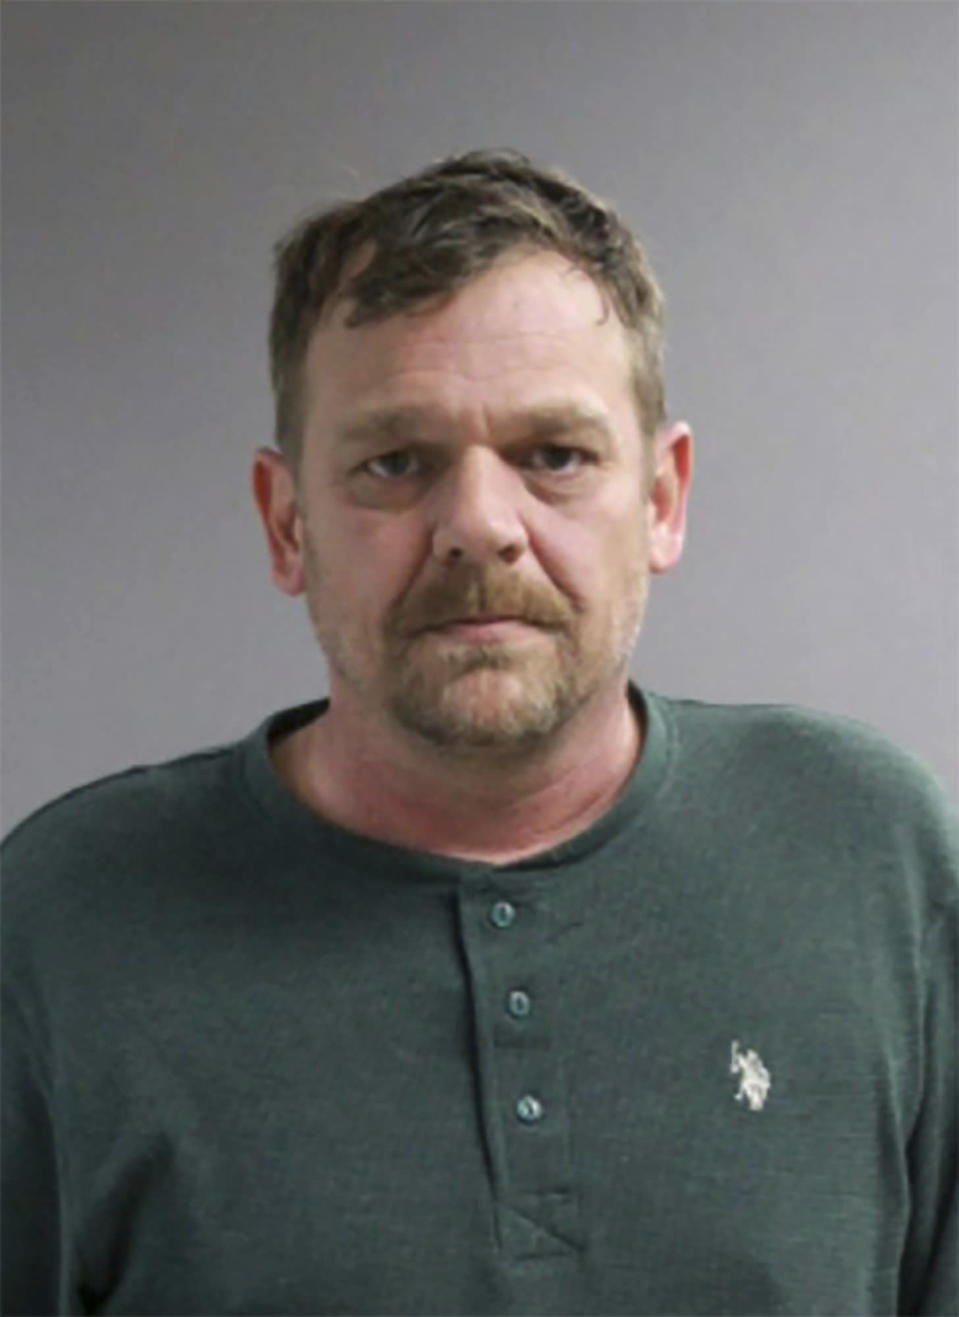 This undated photo provided by the Jackson County Sheriff's Office shows Robert Keegan, who is being held without bail after pleading not guilty to second-degree murder, manslaughter and other charges for the Nov. 23, 2020, killing of Aidan Ellison, a Black man. (Jackson County Sheriff's Office via AP)